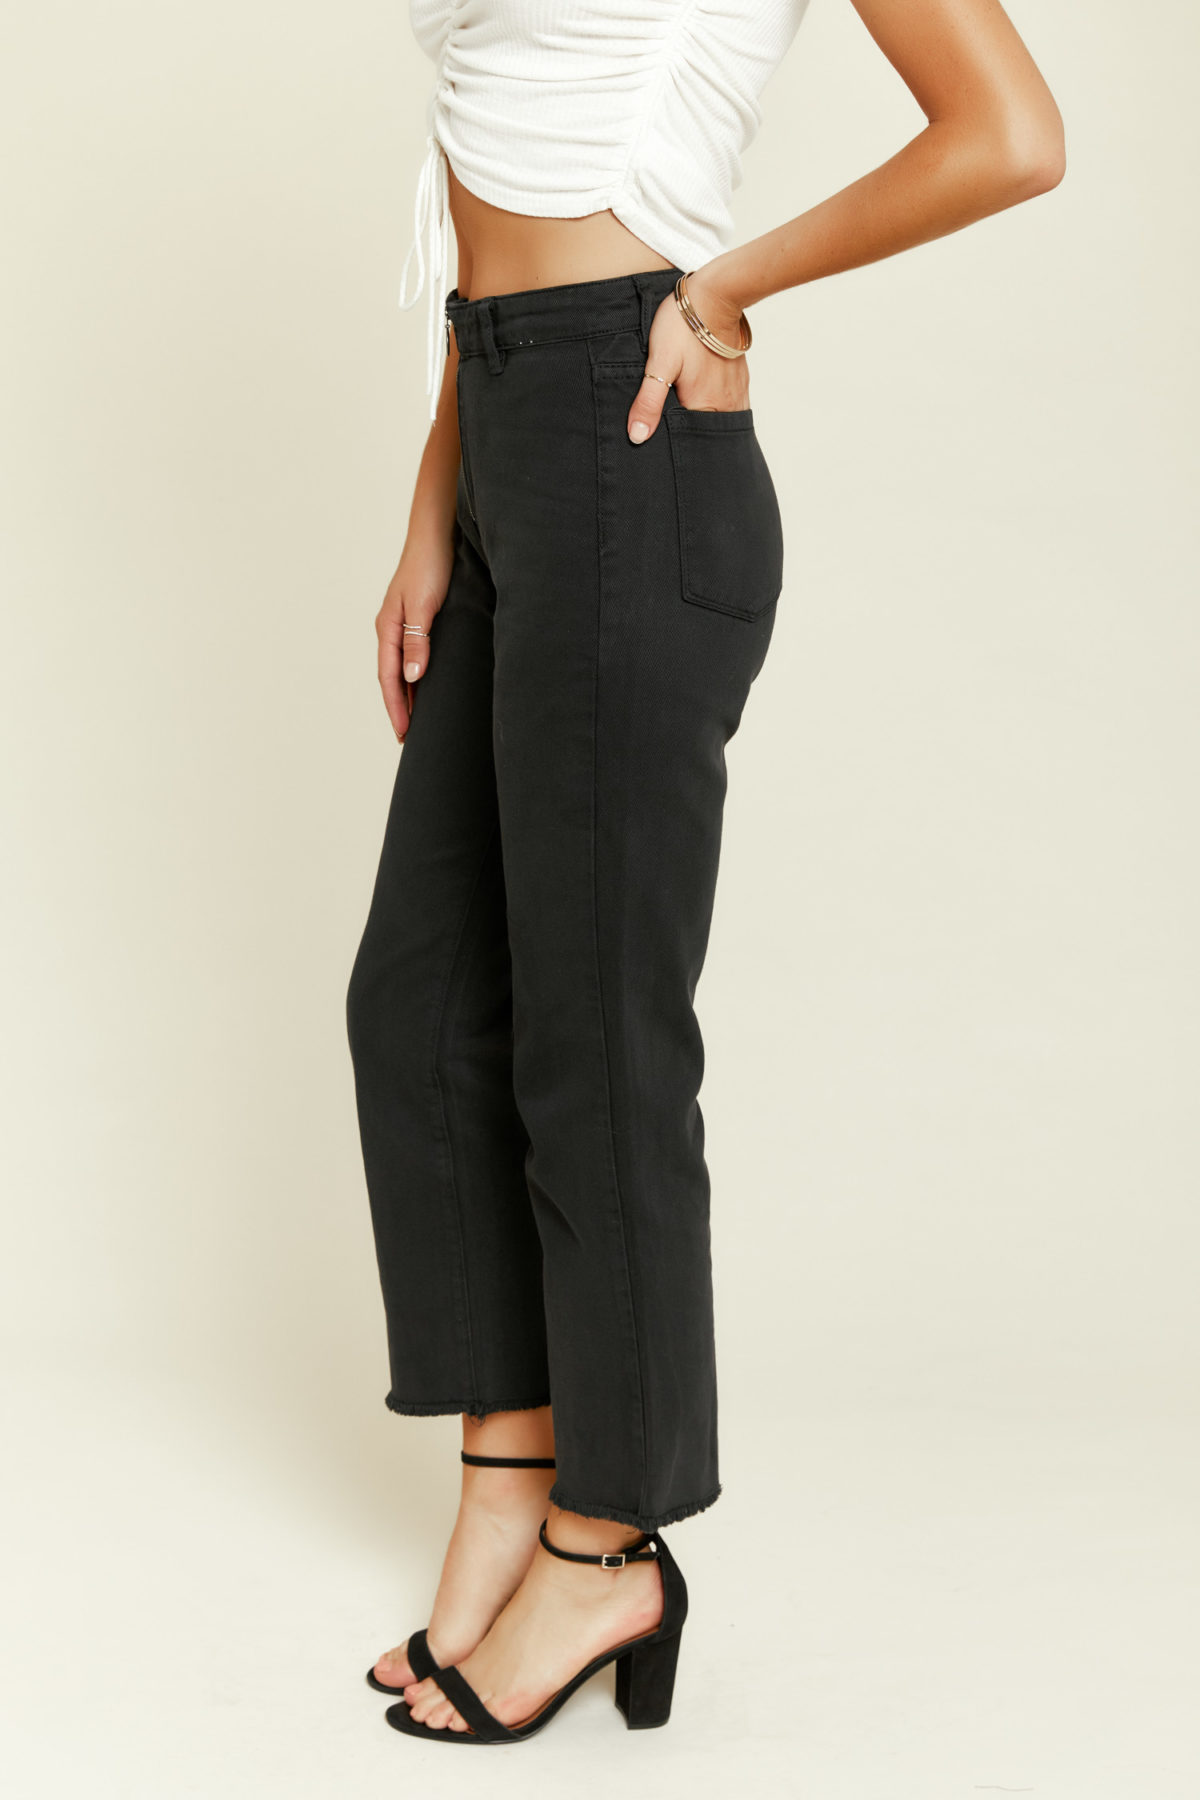 Amuse Society: Skyline Pant